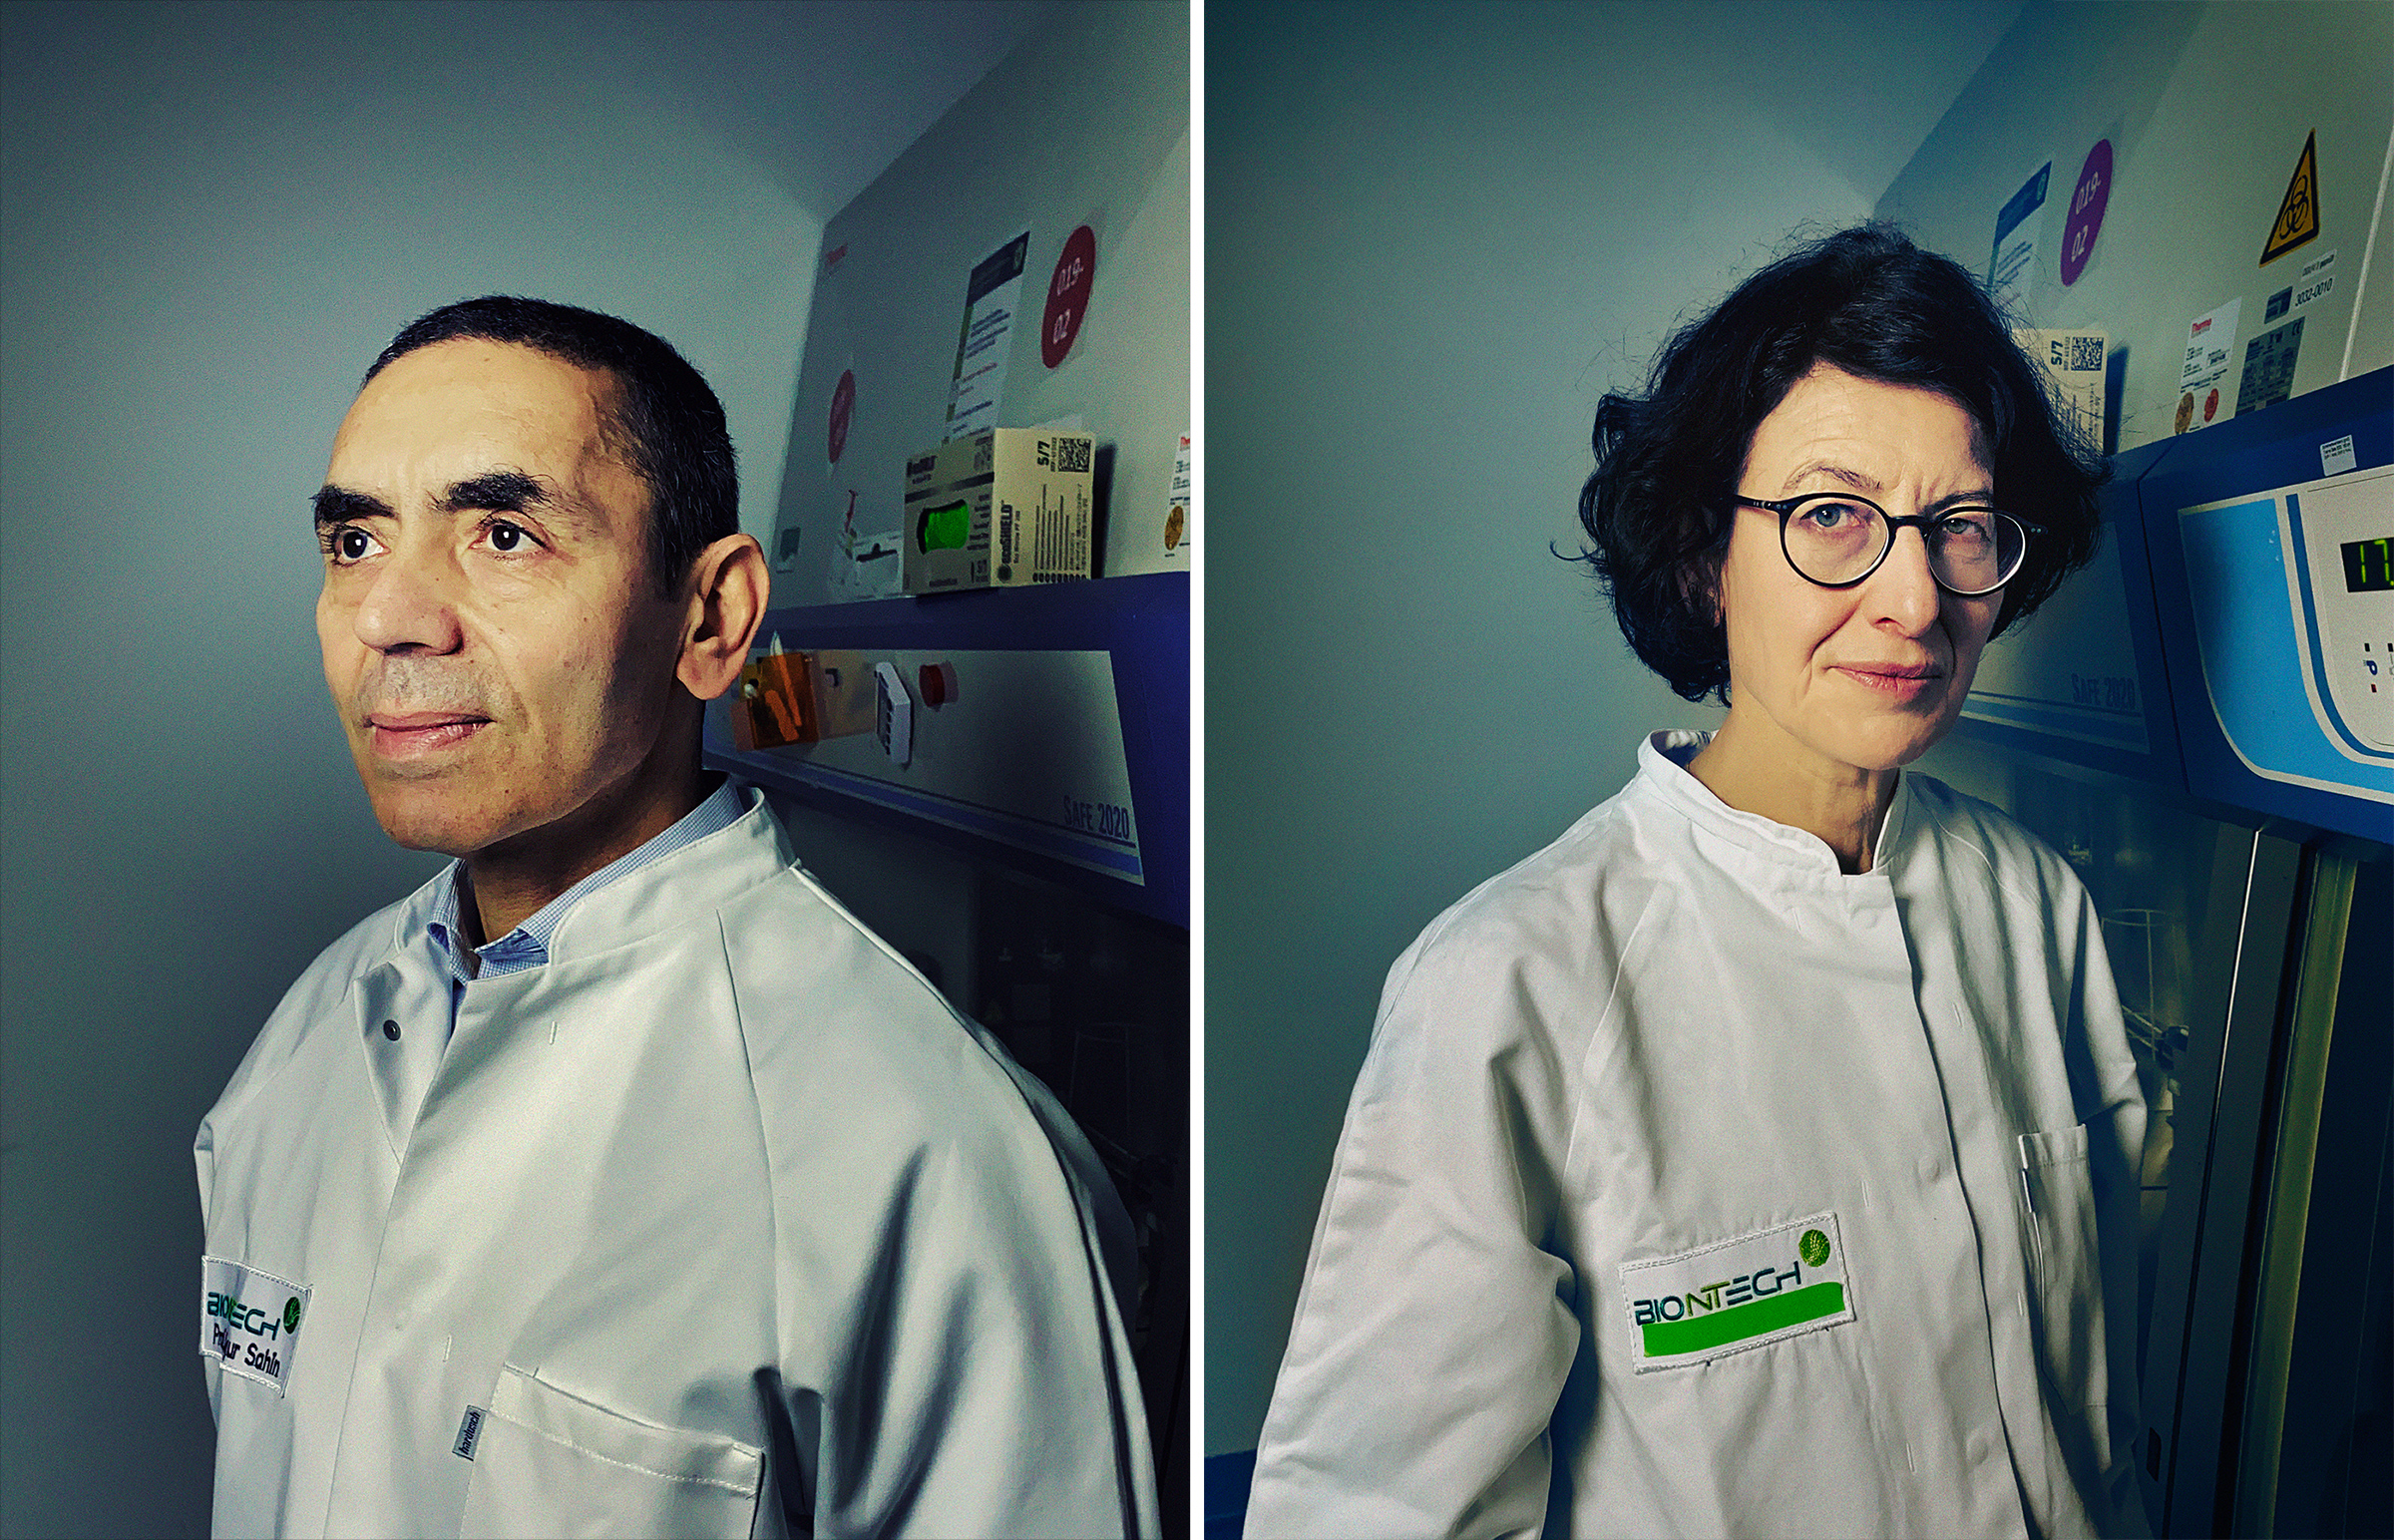 Drs. Ugur Sahin and Ozlem Tureci, Co-founders, BioNTech. In January 2020, before many in the Western world were paying attention to a new virus spreading in China, Dr. Ugur Sahin was convinced it would spur a pandemic. Sahin, who in 2008 co-founded the German biotech company BioNTech with his wife Dr. Ozlem Tureci, went to work on a vaccine and by March called his contact at Pfizer, a much larger pharmaceutical company with which BioNTech had previously worked on an influenza vaccine using mRNA. Less than a year later, the Pfizer-BioNTech COVID-19 vaccine became the first ever mRNA vaccine available for widespread use. Even so, Sahin, BioNTech's CEO, and Tureci, its chief medical officer, maintain that BioNTech is not an mRNA company but rather an immunotherapy company. Much of the couple's work—both at BioNTech and at their previous venture, Ganymed—has focused on treating cancer. But it is mRNA, and the COVID-19 vaccine made possible by the technology, that has pushed the famously hardworking couple into the ­limelight—and helped them become one of the richest pairs in Germany, though they reportedly still bicycle to work and live in a modest apartment near their office.